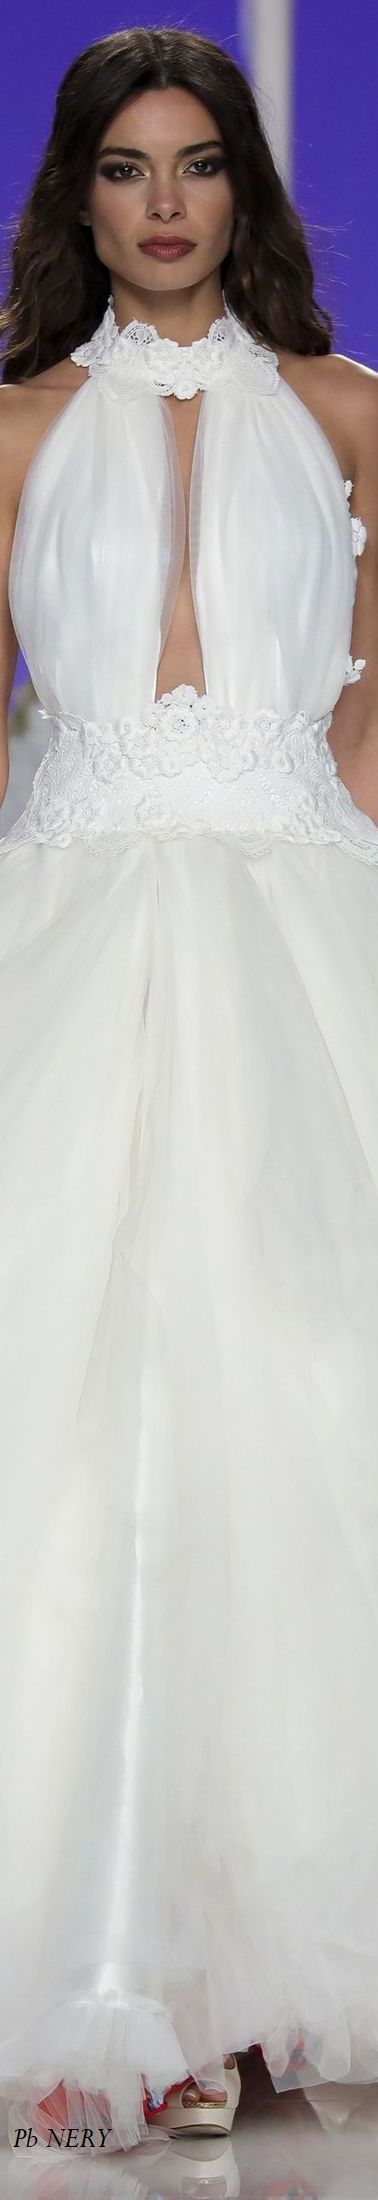 best beautiful wedding gowns images by estheva spa on